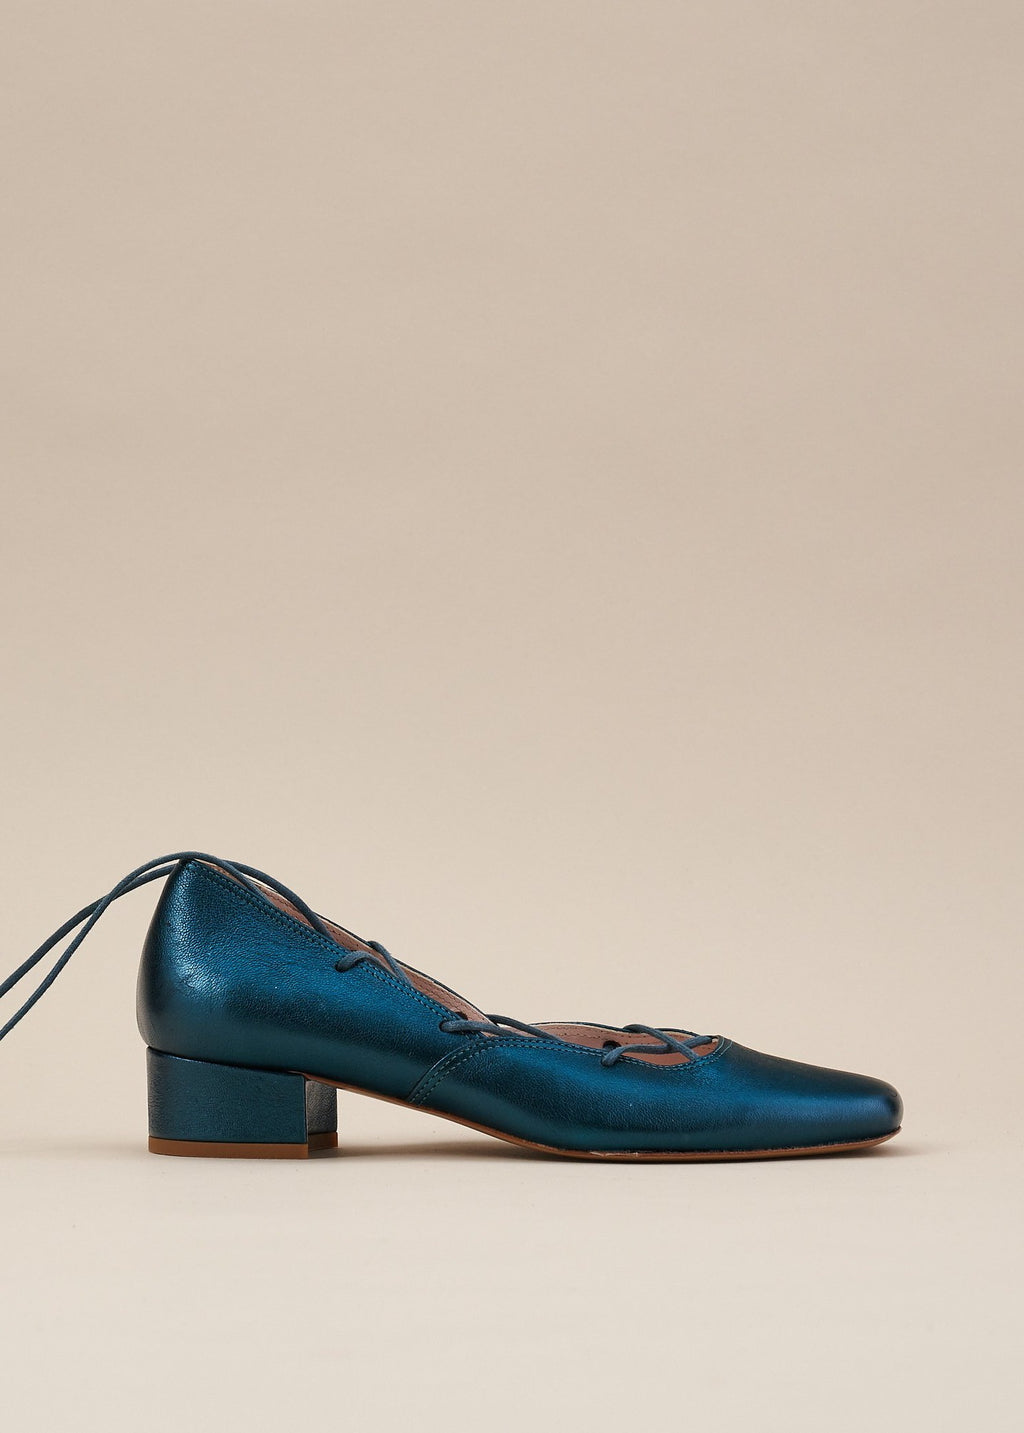 Elinor Teal Metallic Leather Lace-up Ballerina Pump - LAST PAIRS